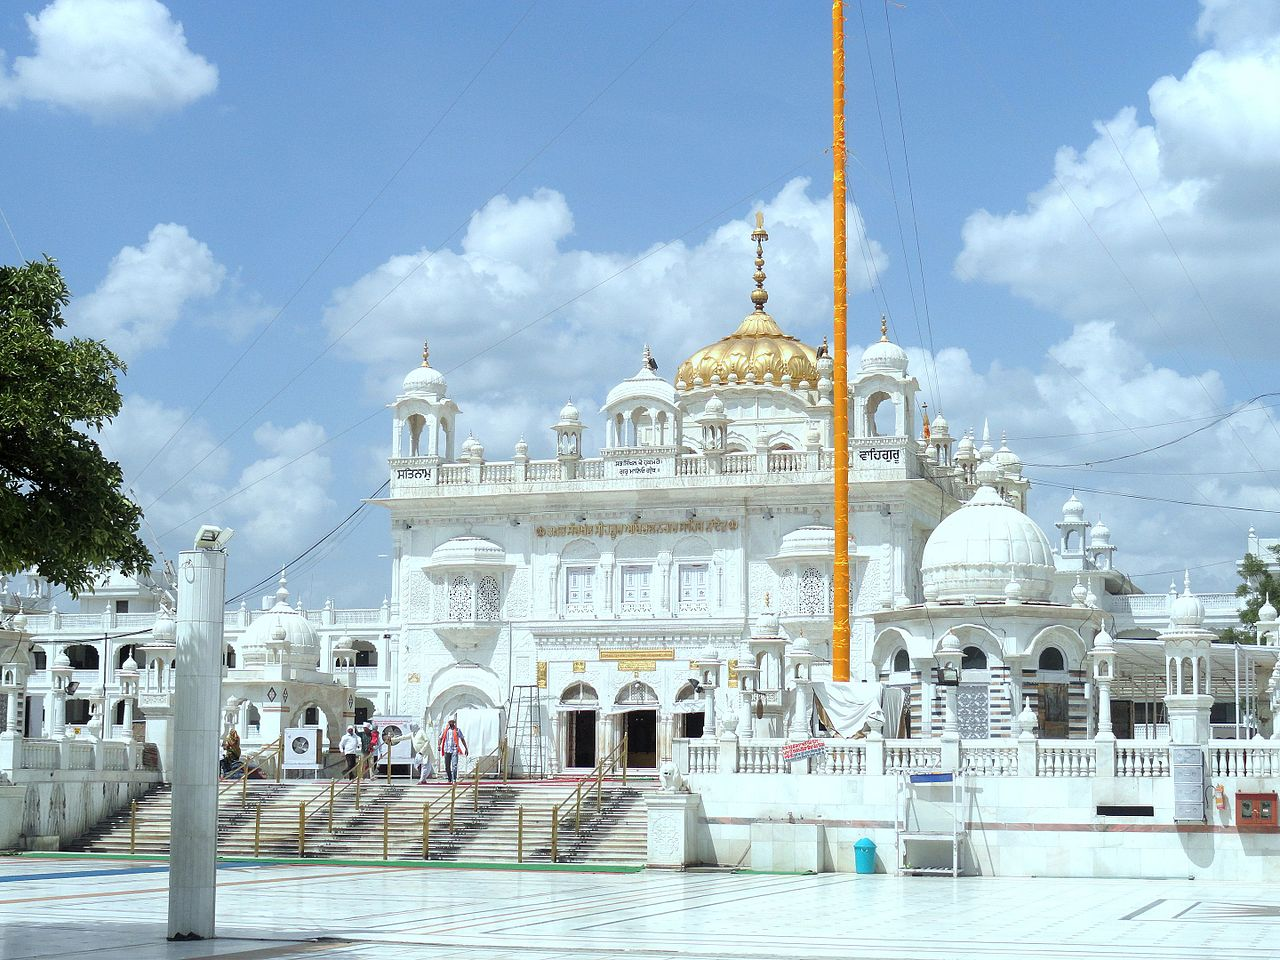 Hazur Sahib - One of the Takhts of Sikhism in Nanded, Maharashtra